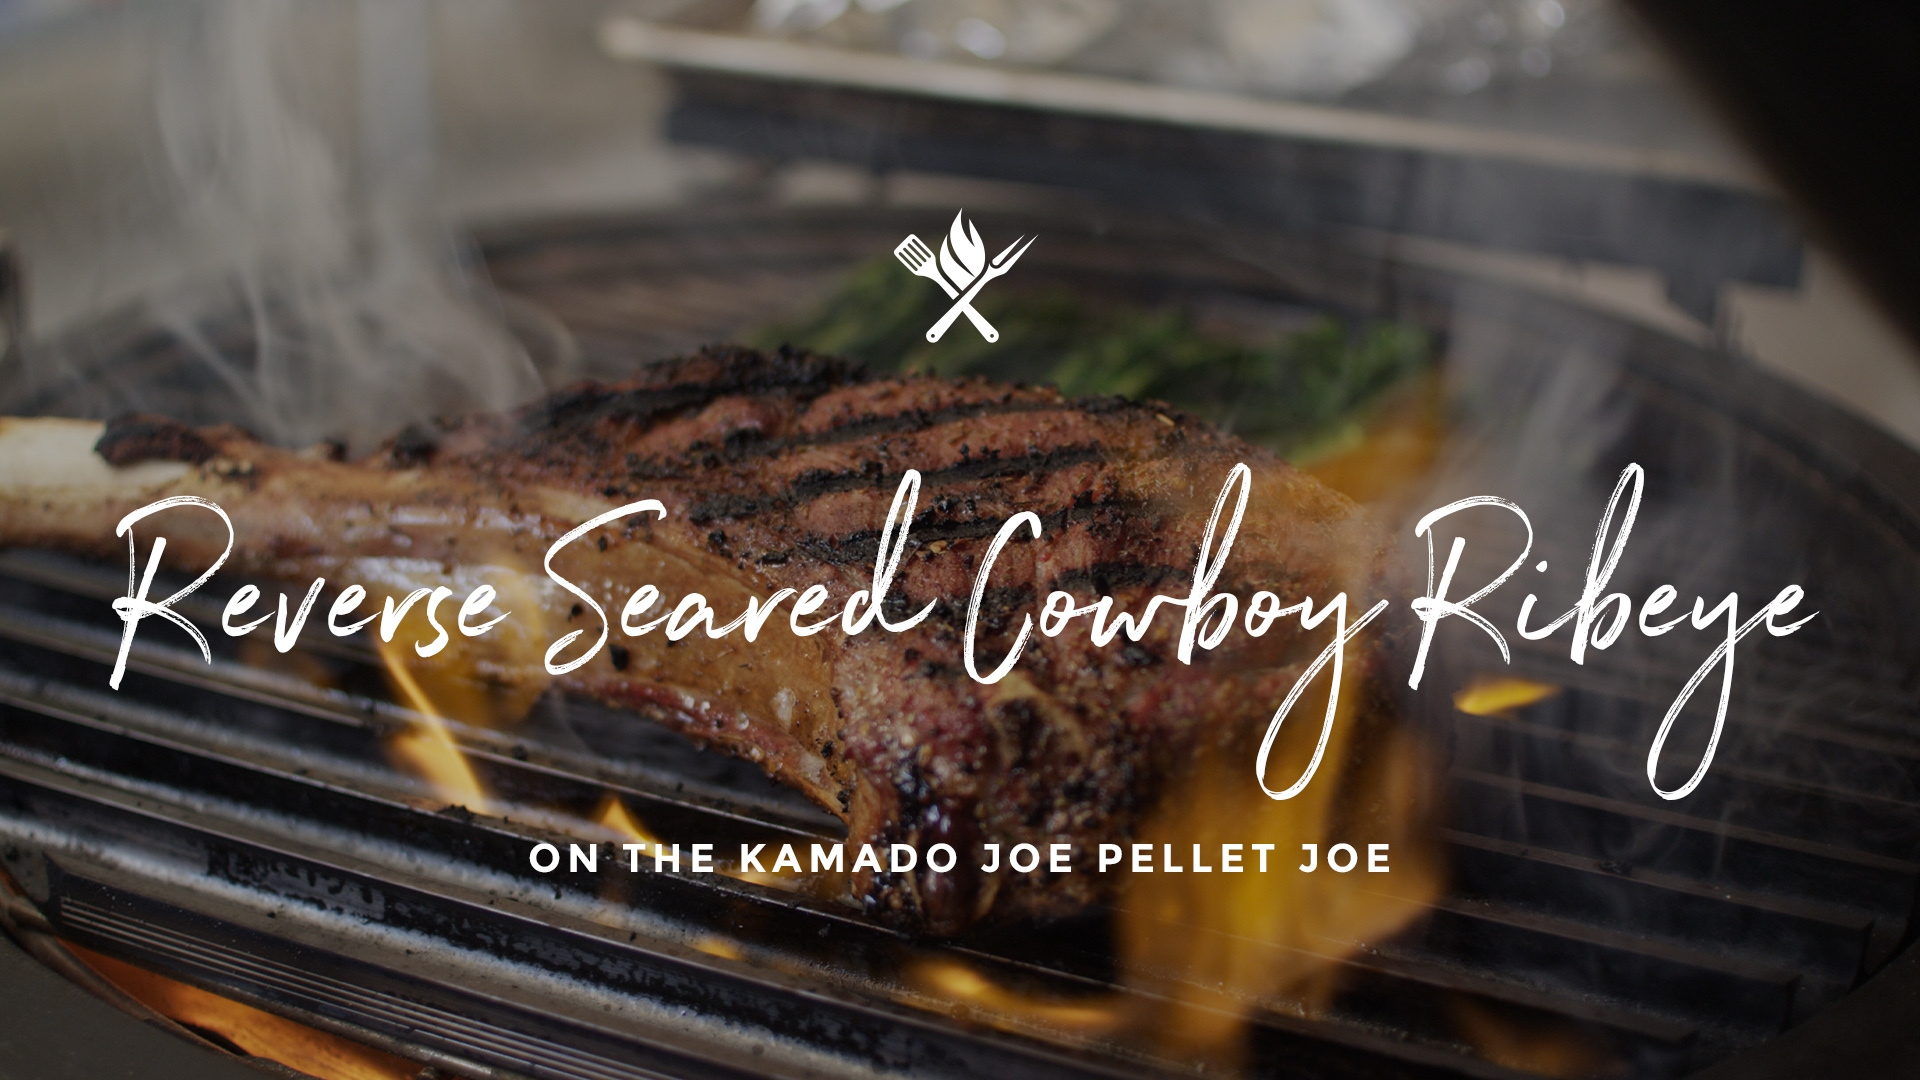 How to make a Reverse Seared Cowboy Ribeye on the Kamado Joe Pellet Joe